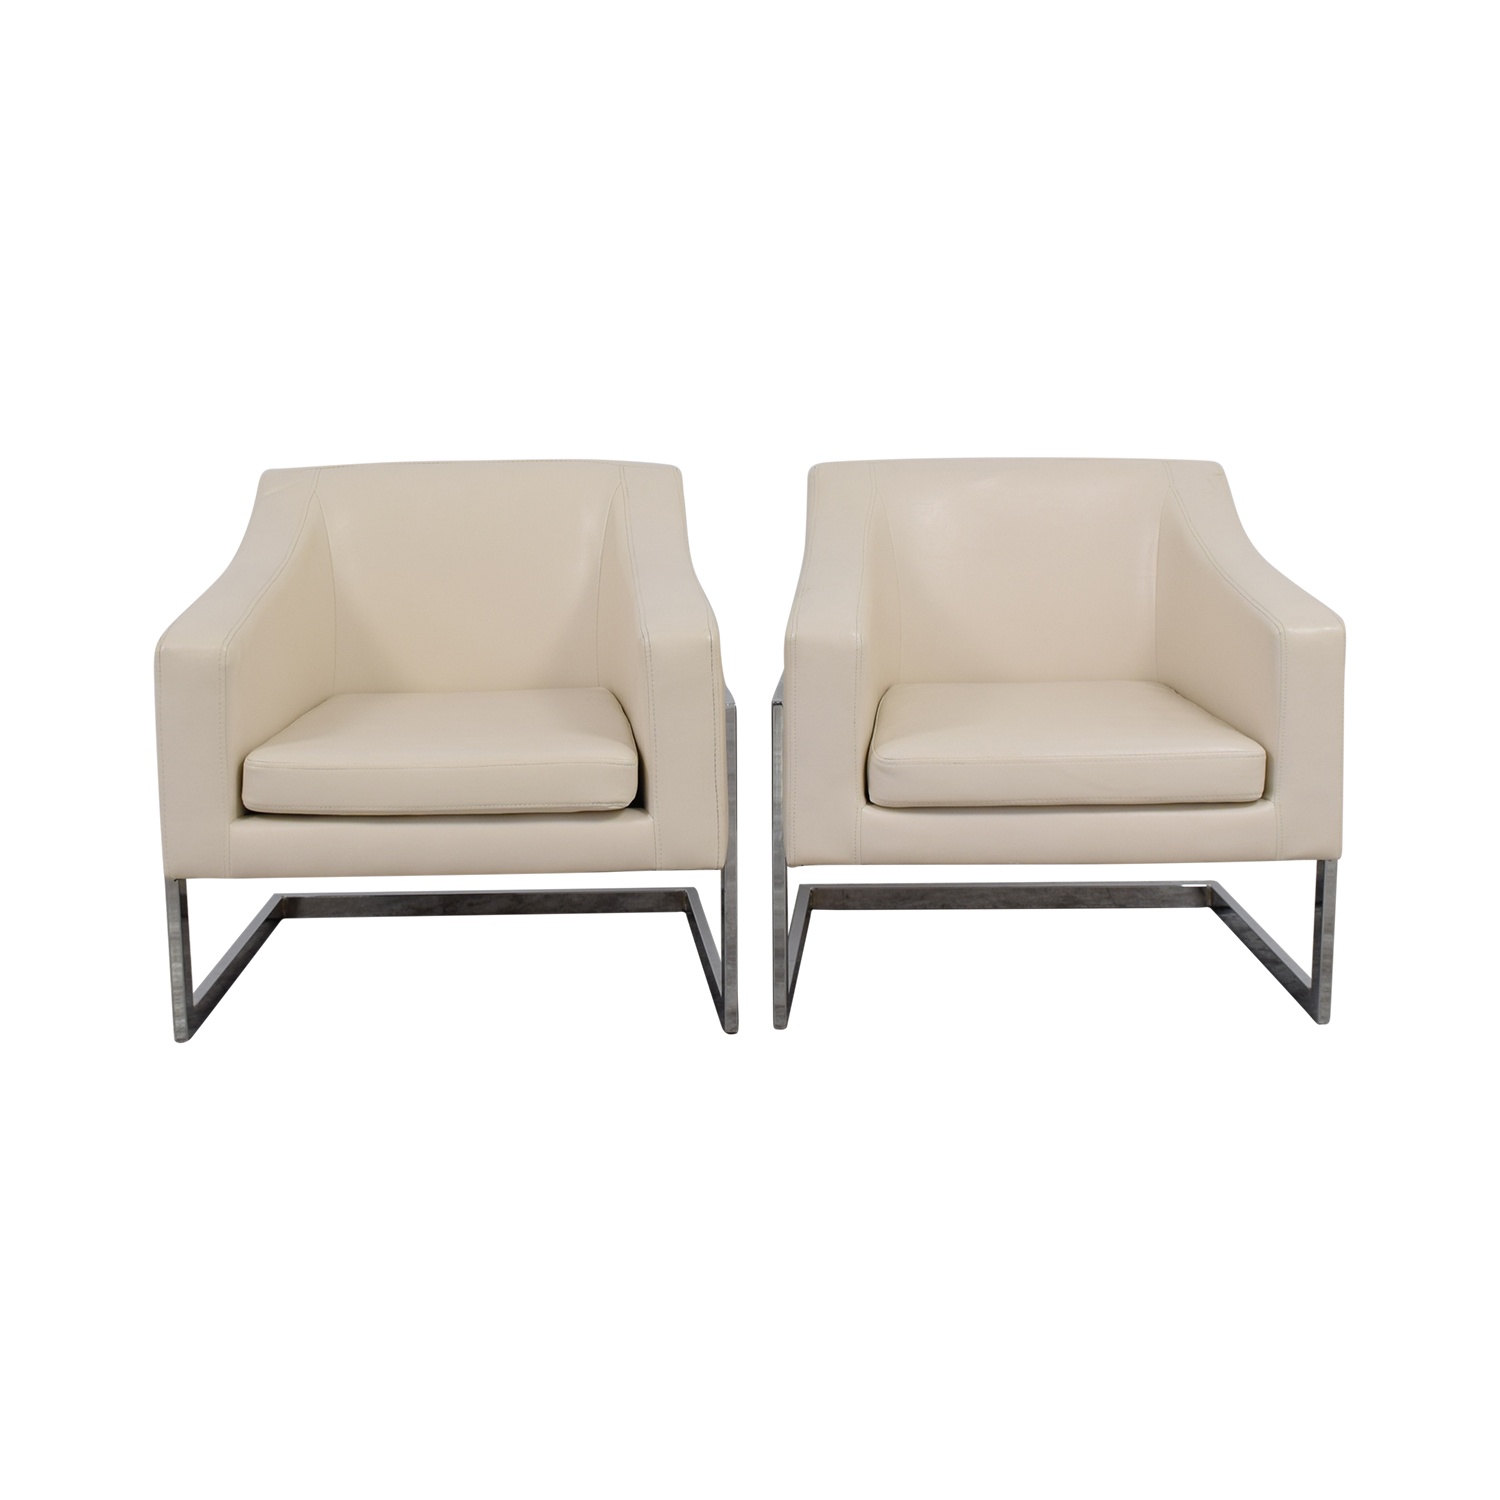 Coaster Coaster White Leatherette Accent Chairs on sale